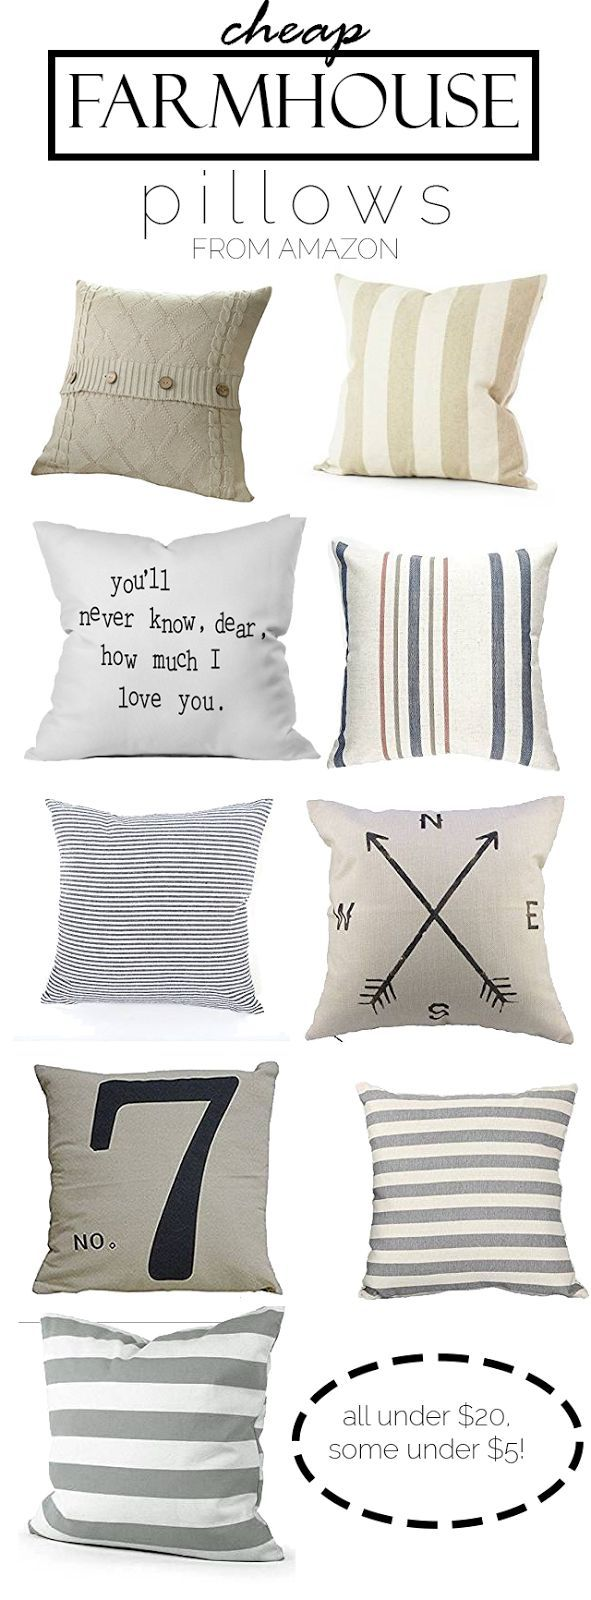 Cheap Decorative Pillows Under $10 Endearing 174 Best Coussins Images On Pinterest  Home Ideas Pillows And Blinds Review